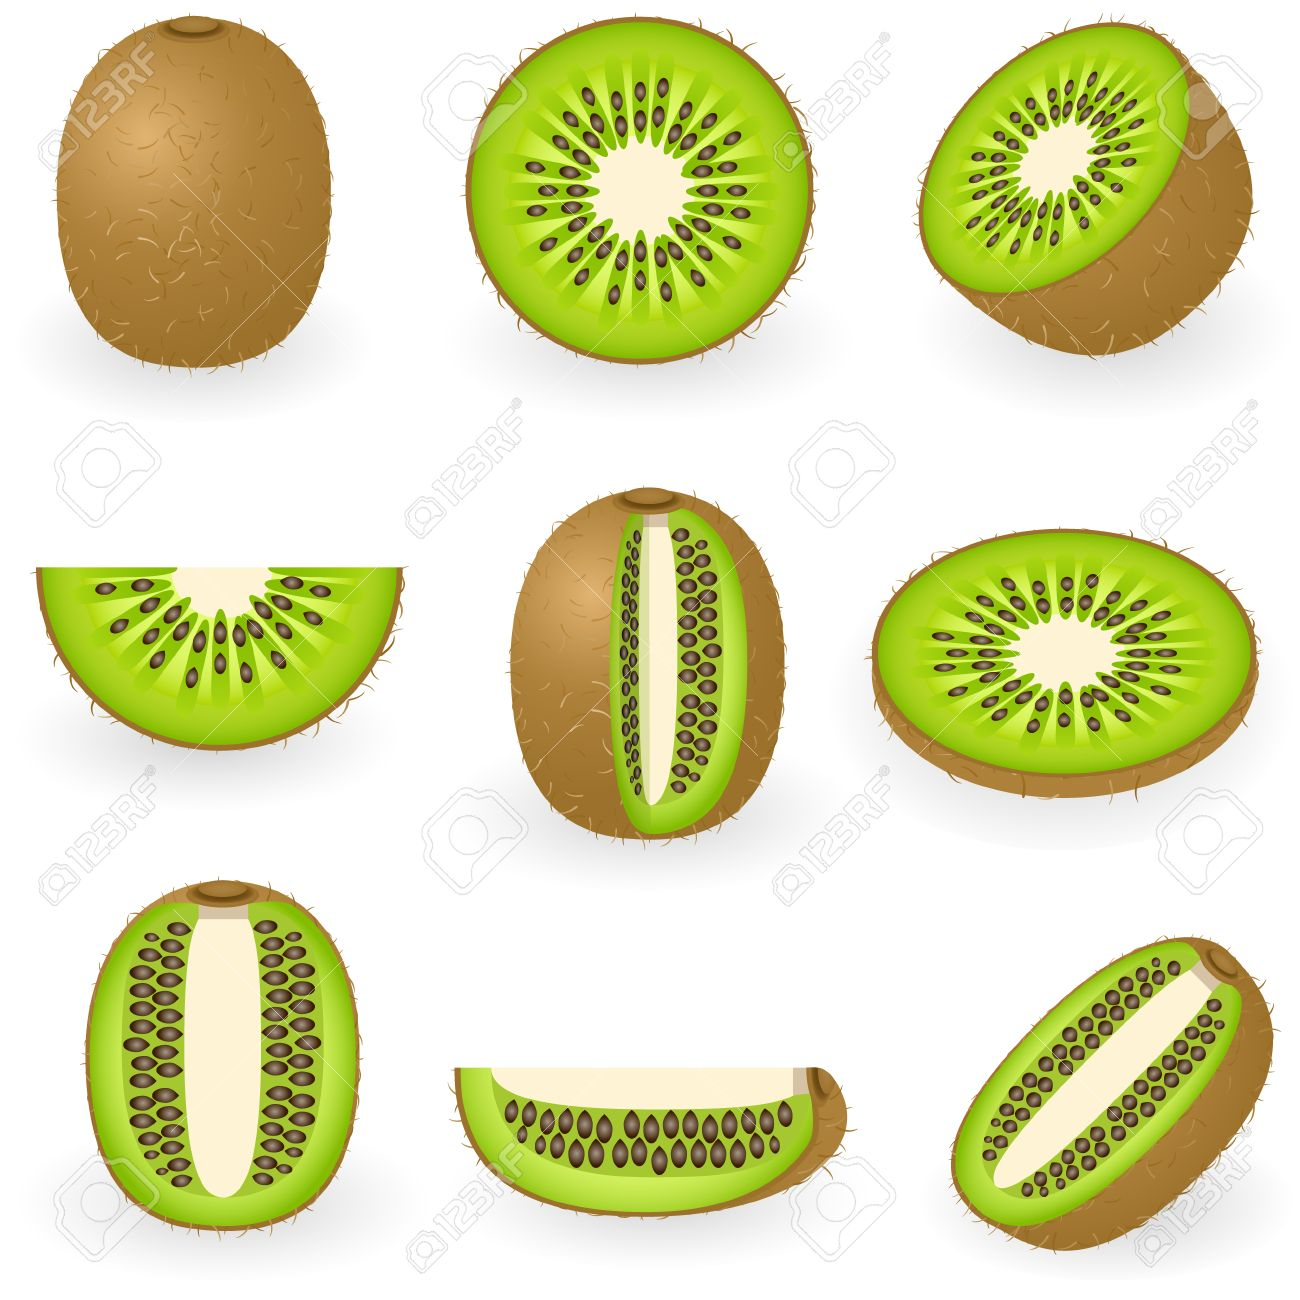 Kiwi Fruit Silhouette Kiwi Fruit Vector